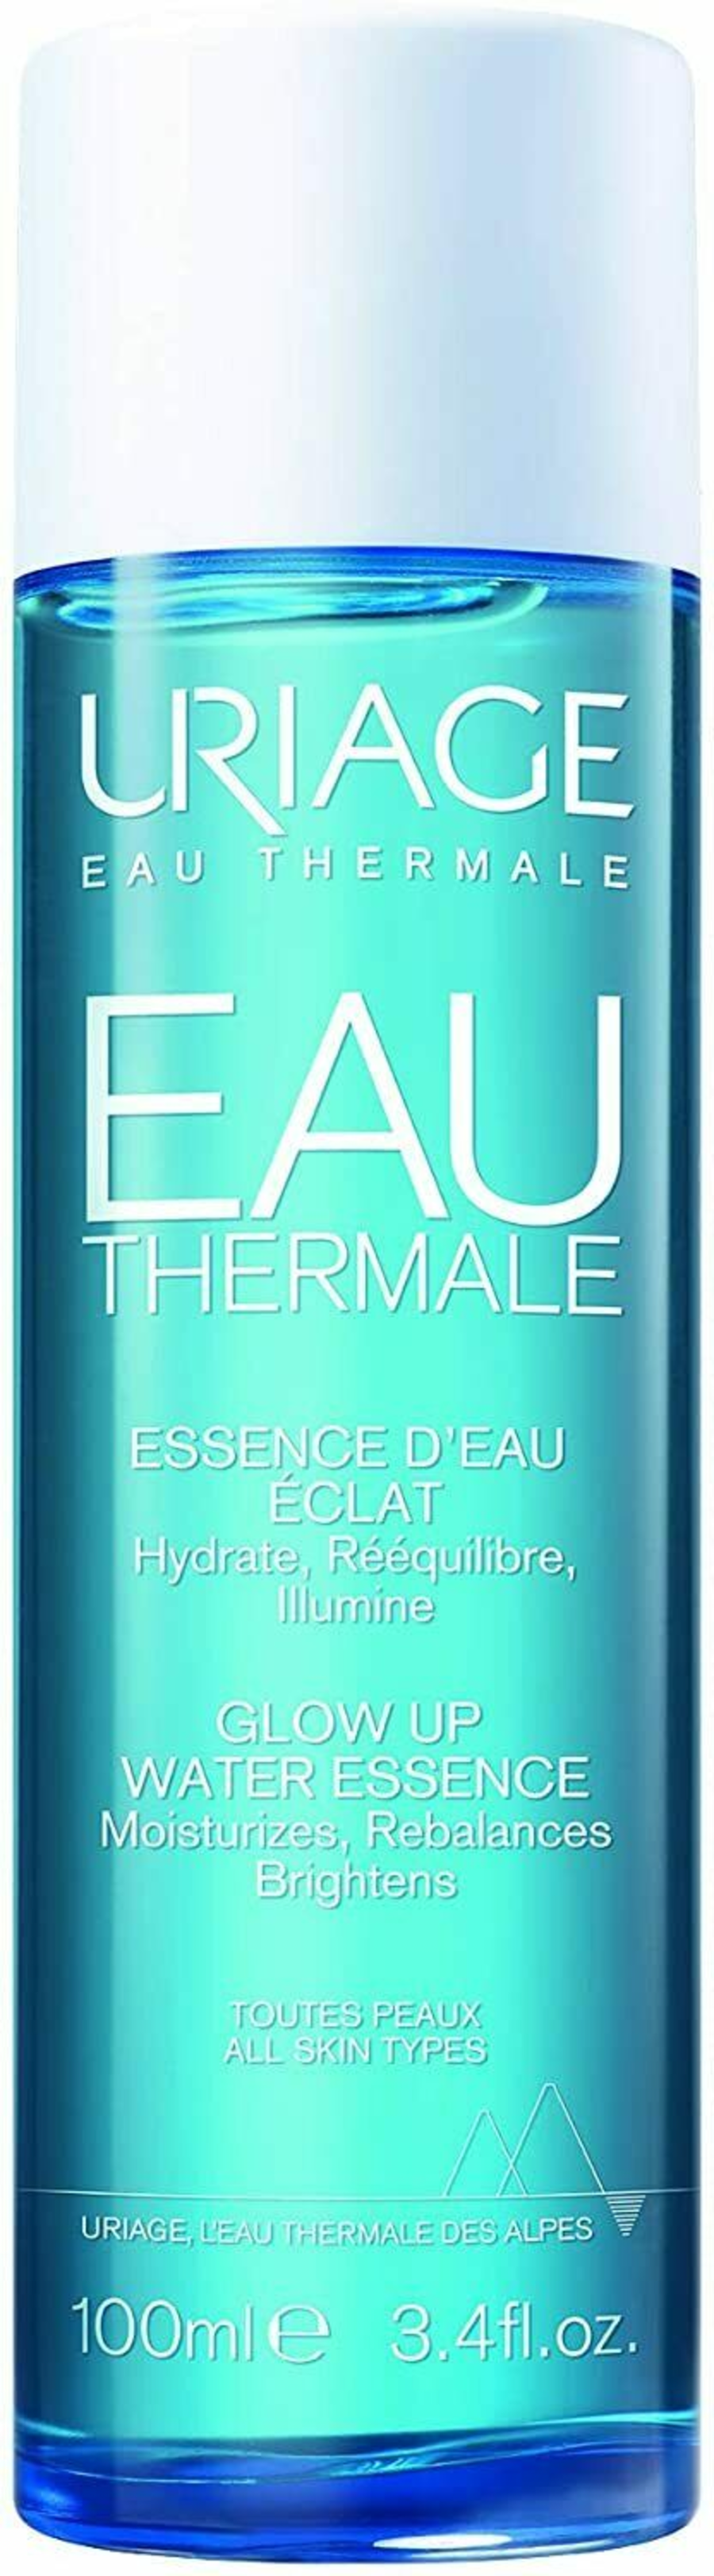 Uriage Eau Thermale Glow Up Thermal Spring Water Essence 100ml